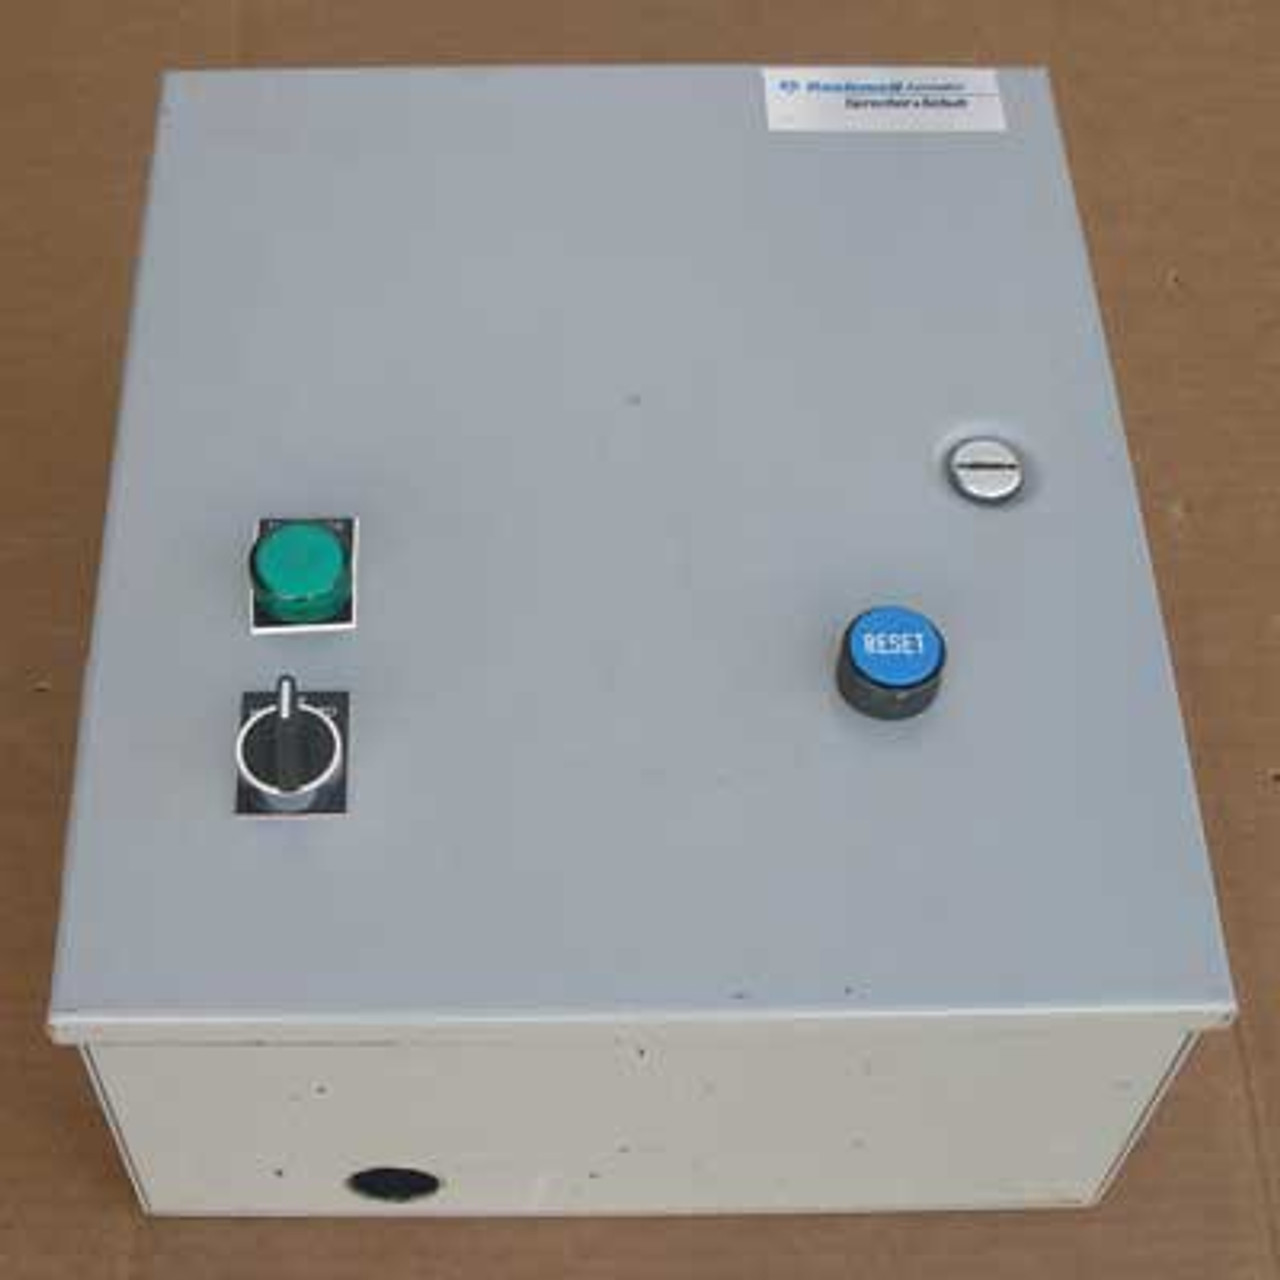 Rockwell S&S 3-37-XC-32-G7 Full Voltage Starter 120V - Used